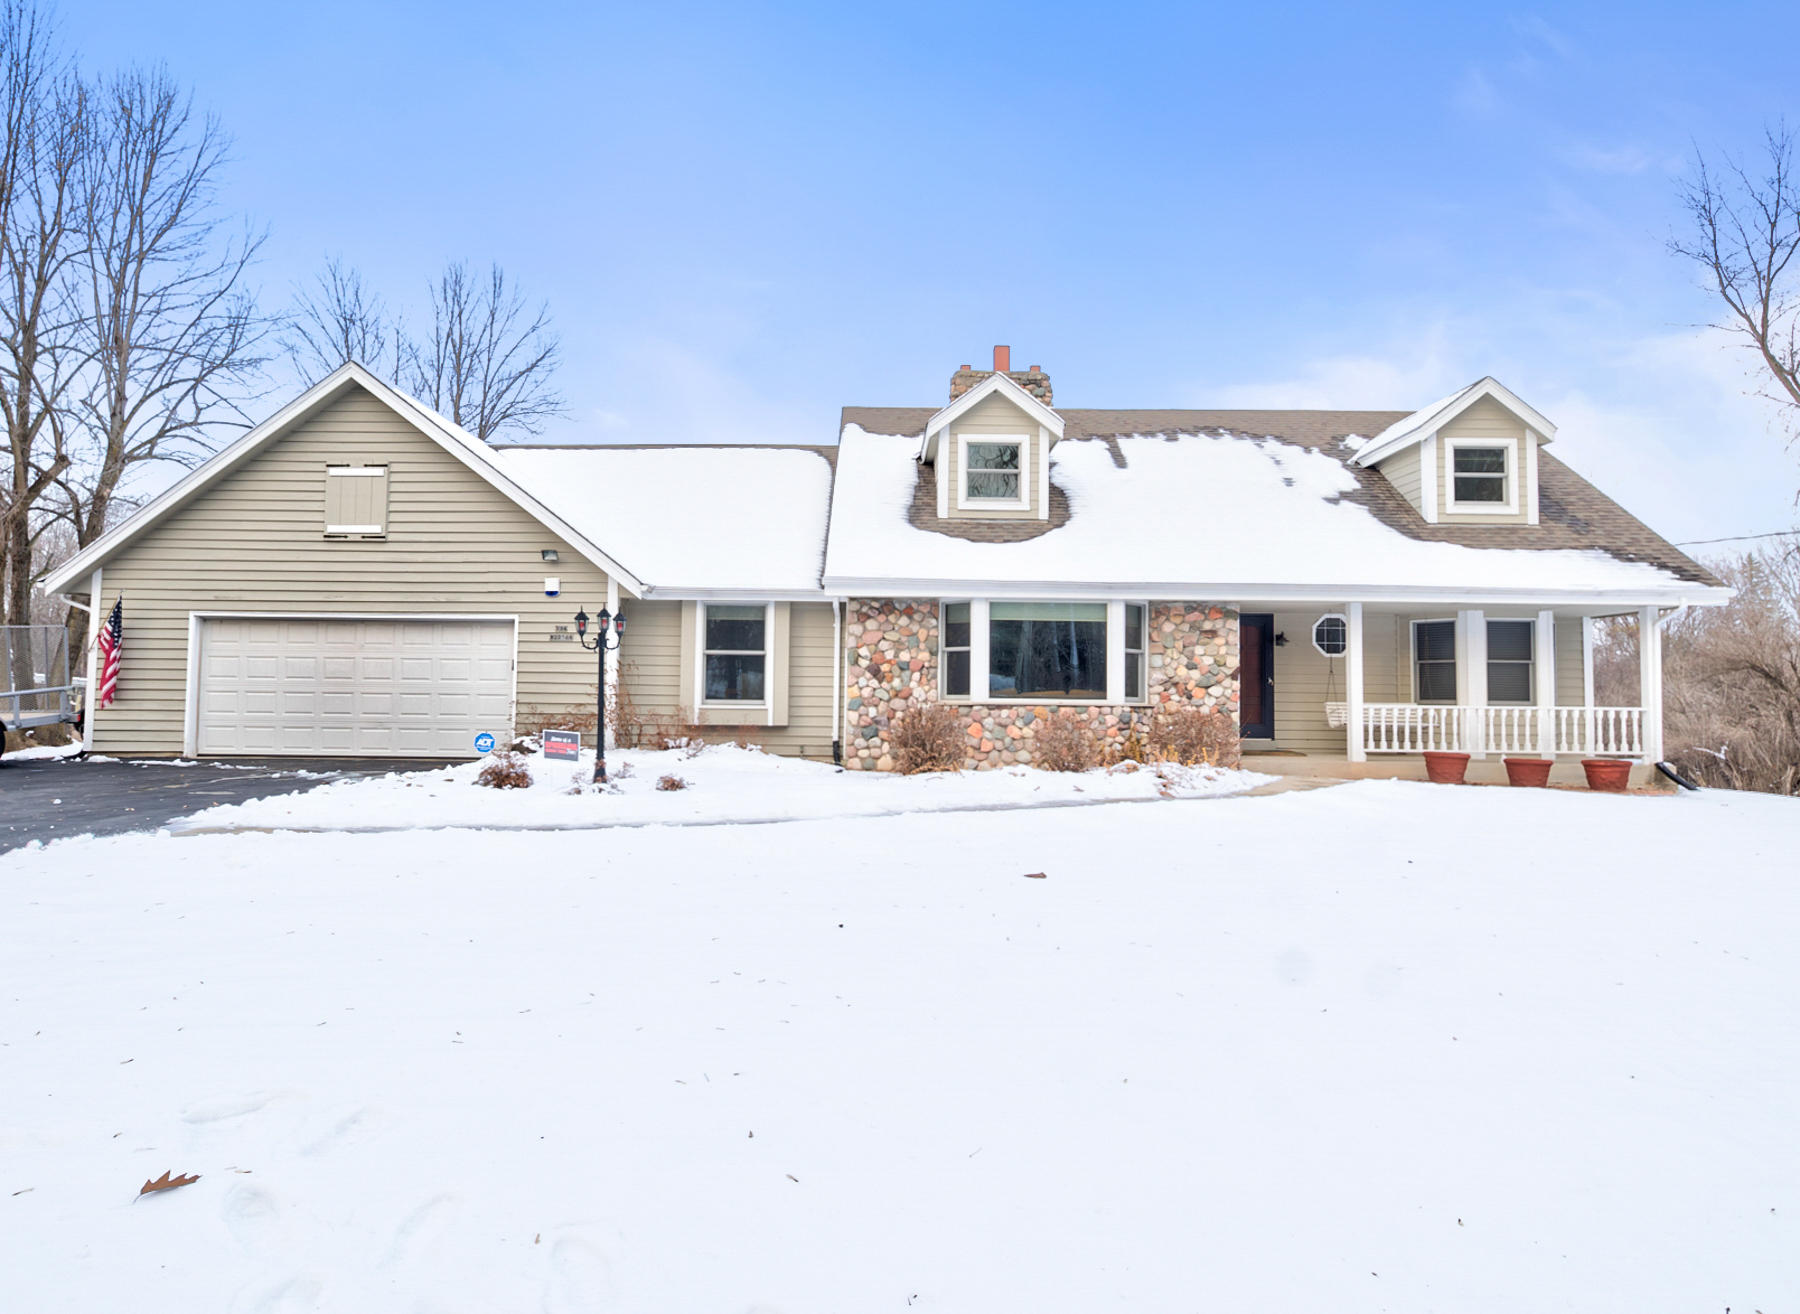 N94W20564 Schlei Rd, Menomonee Falls, Wisconsin 53051, 4 Bedrooms Bedrooms, 10 Rooms Rooms,2 BathroomsBathrooms,Single-family,For Sale,Schlei Rd,1722017